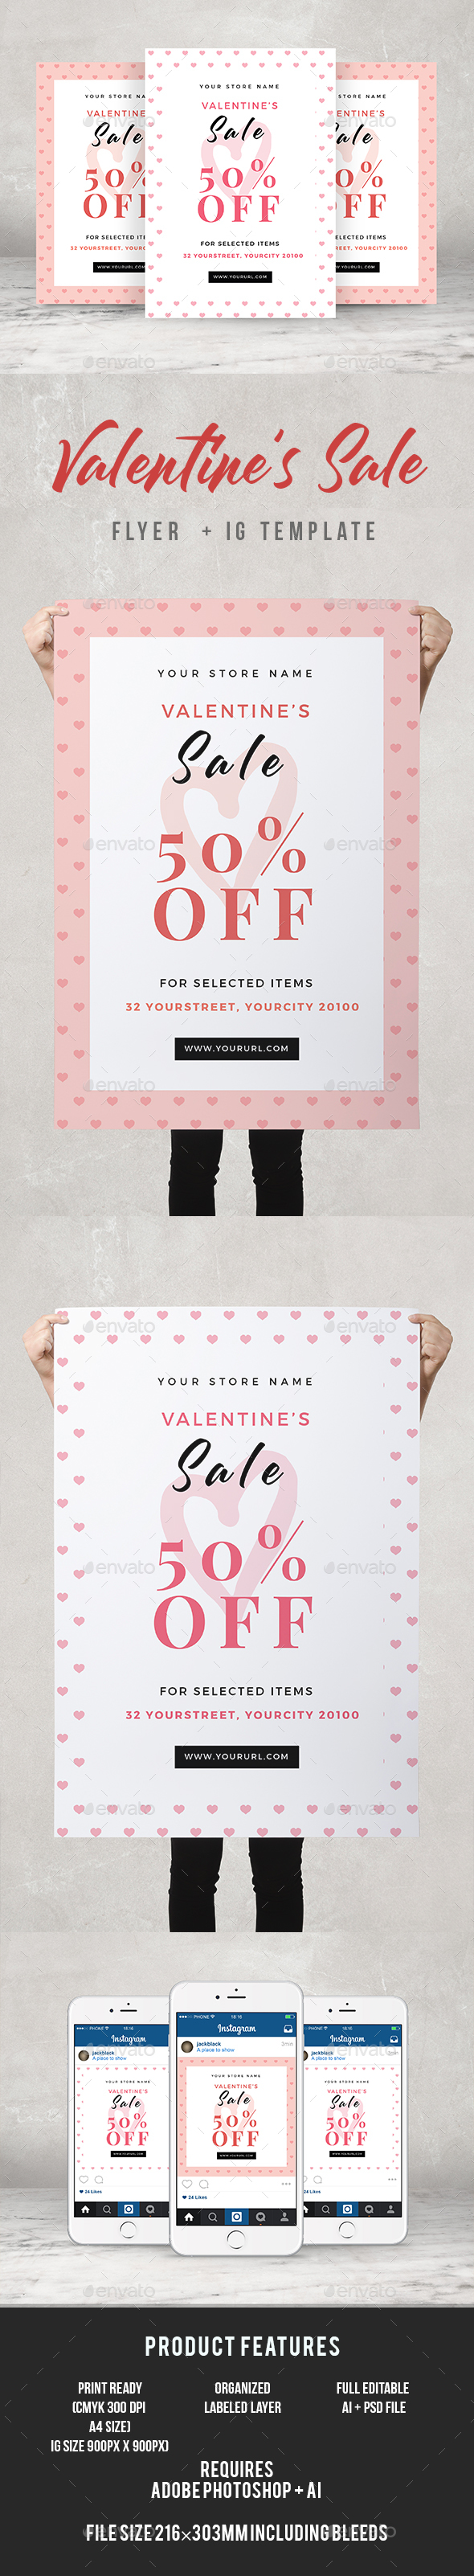 Valentines Sale Flyer - Commerce Flyers